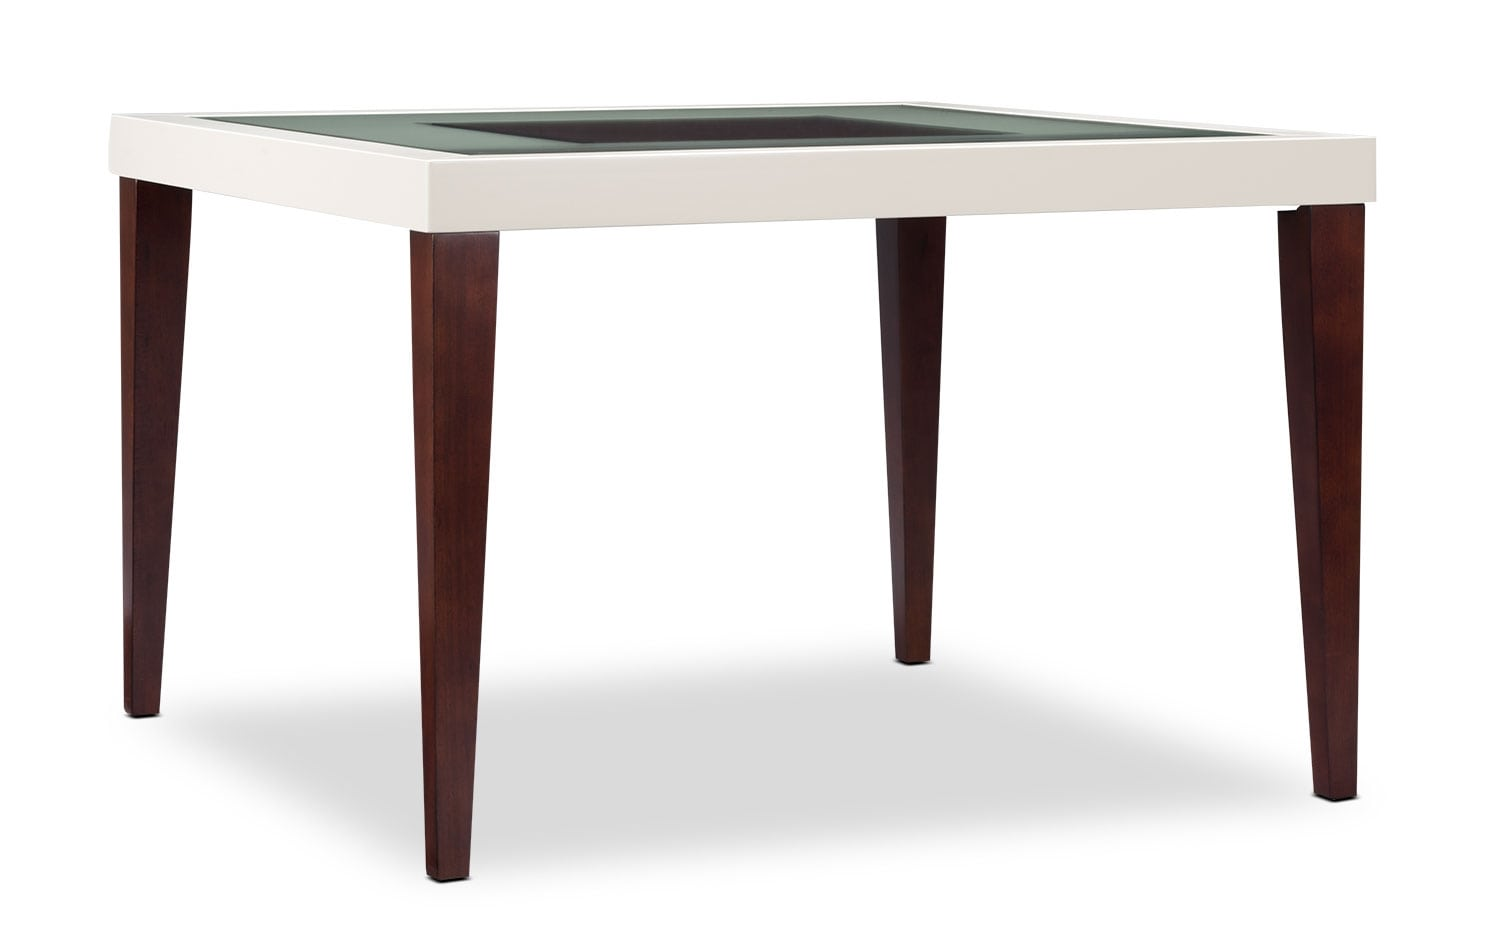 Dining Room Furniture - Zeno Counter-Height Dining Table